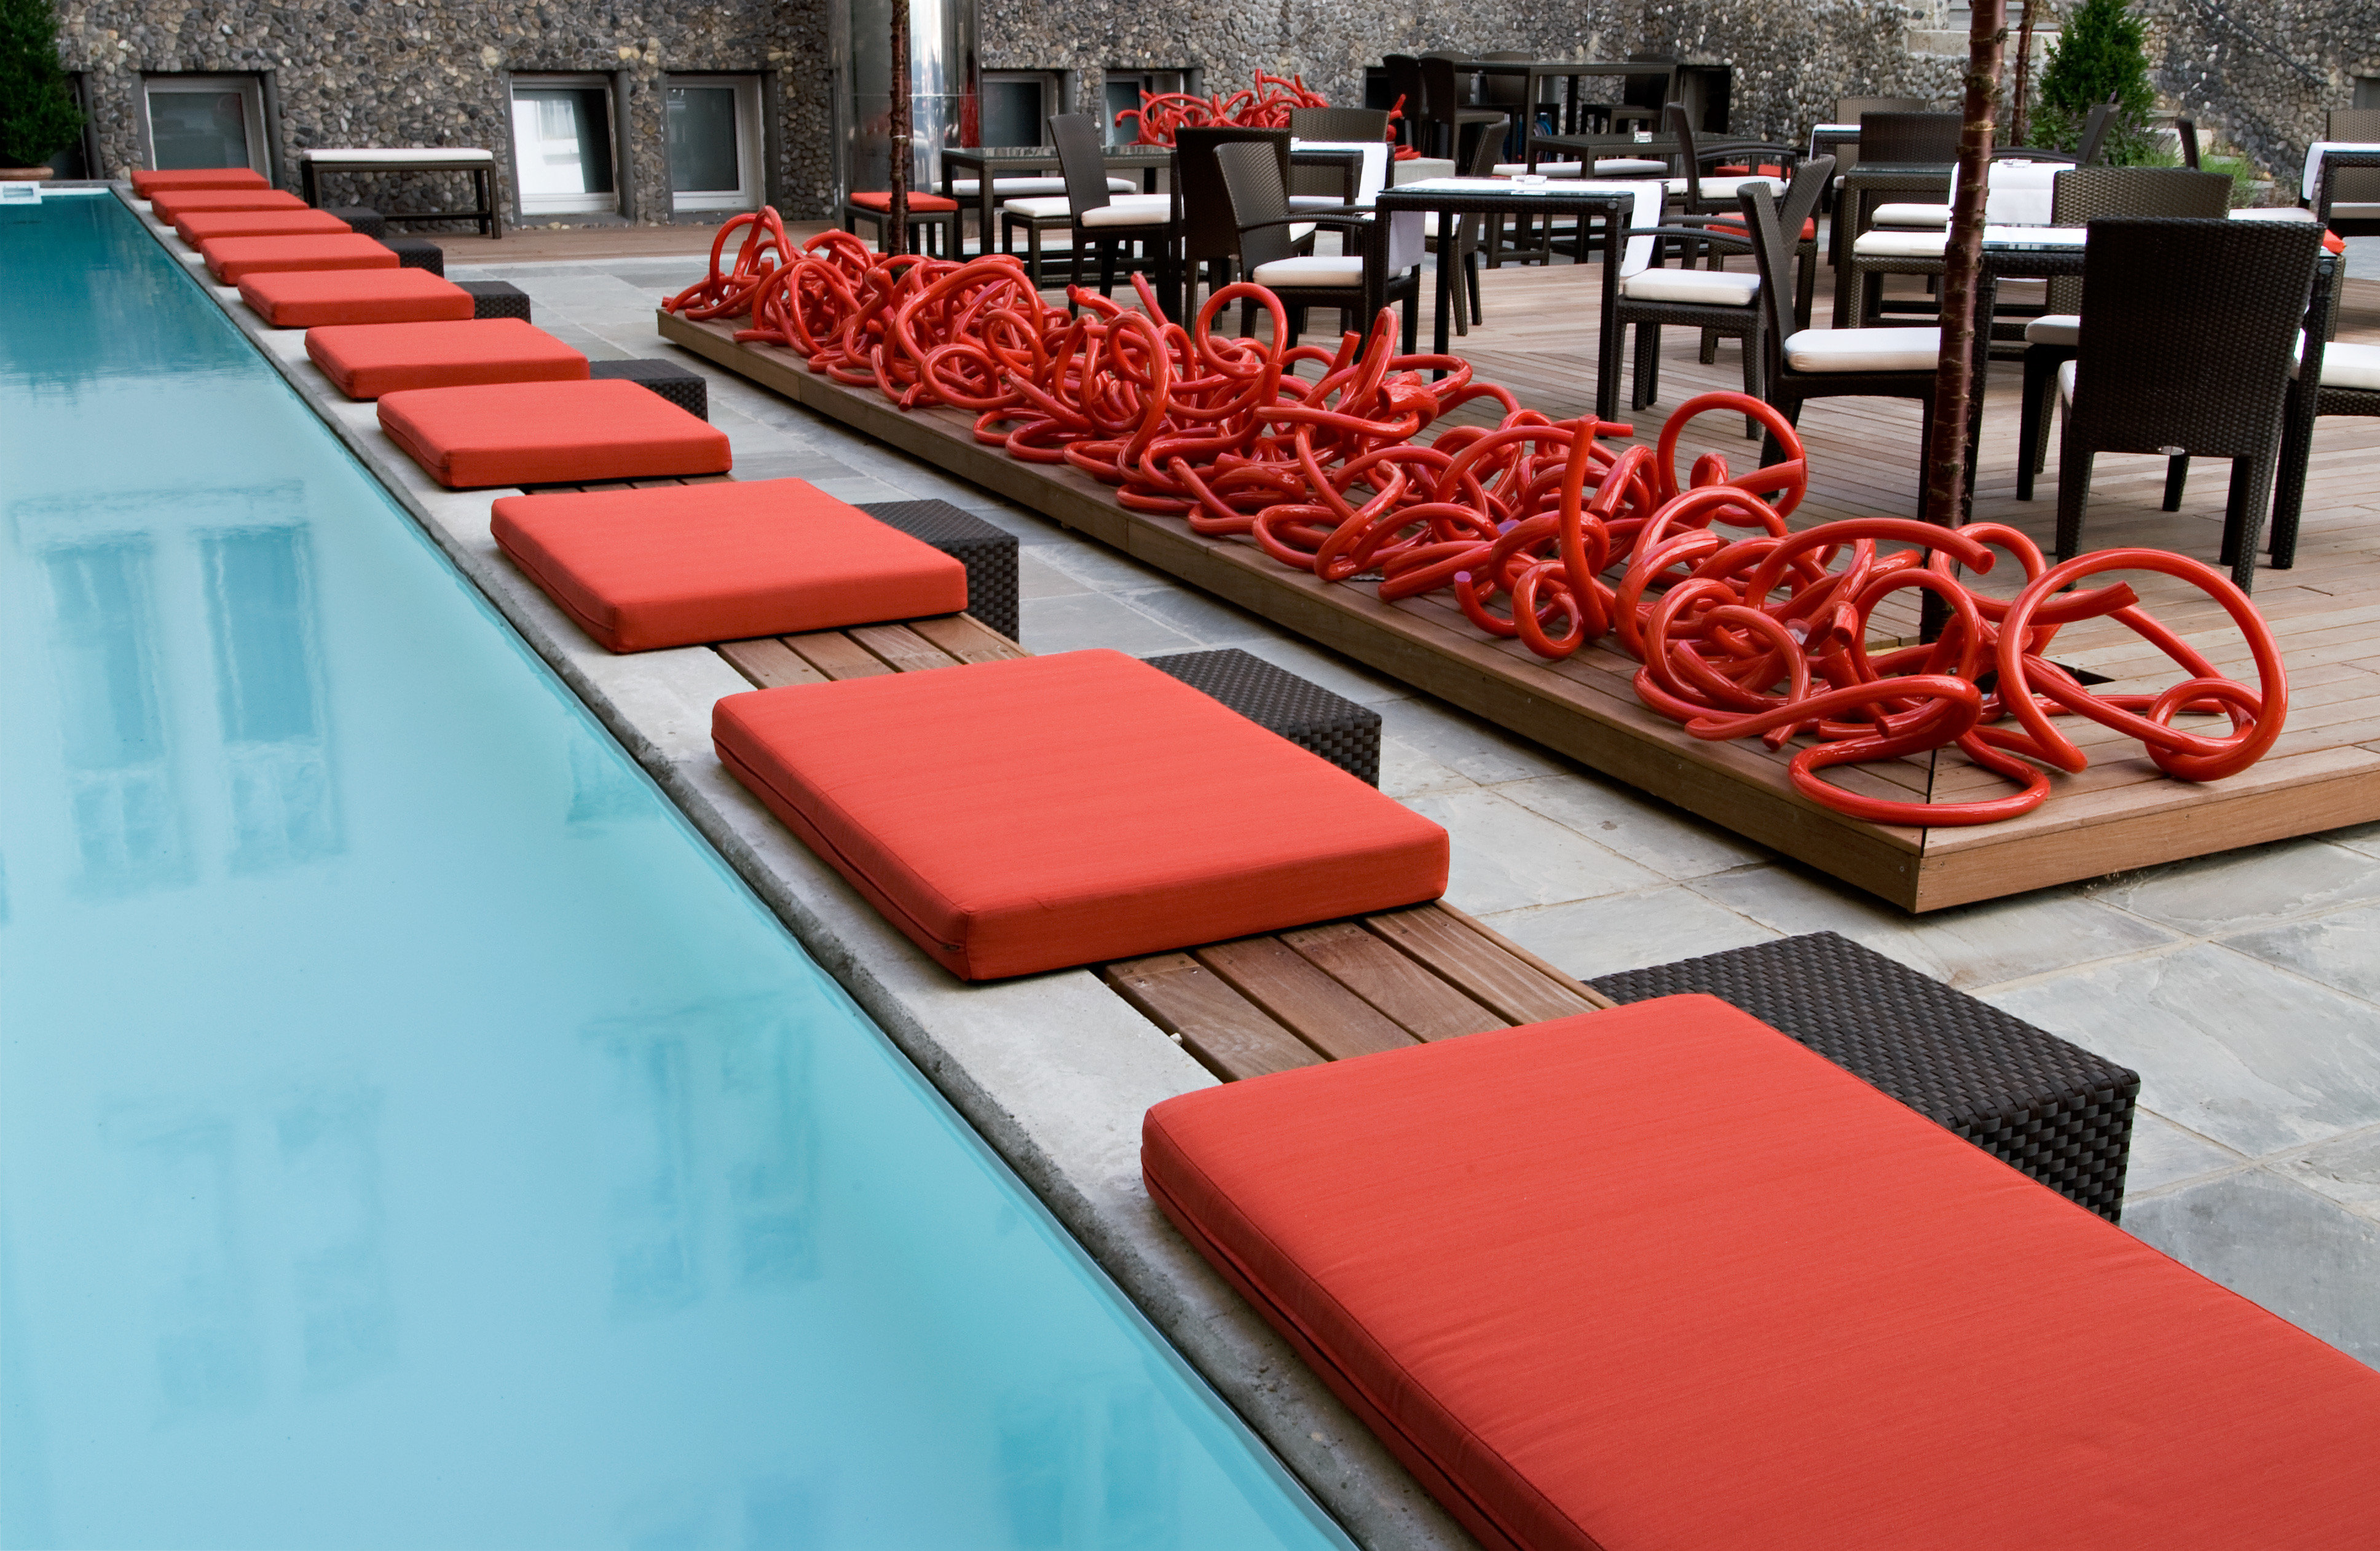 Luxury Pool leisure red structure sport venue swimming pool flooring restaurant orange lined